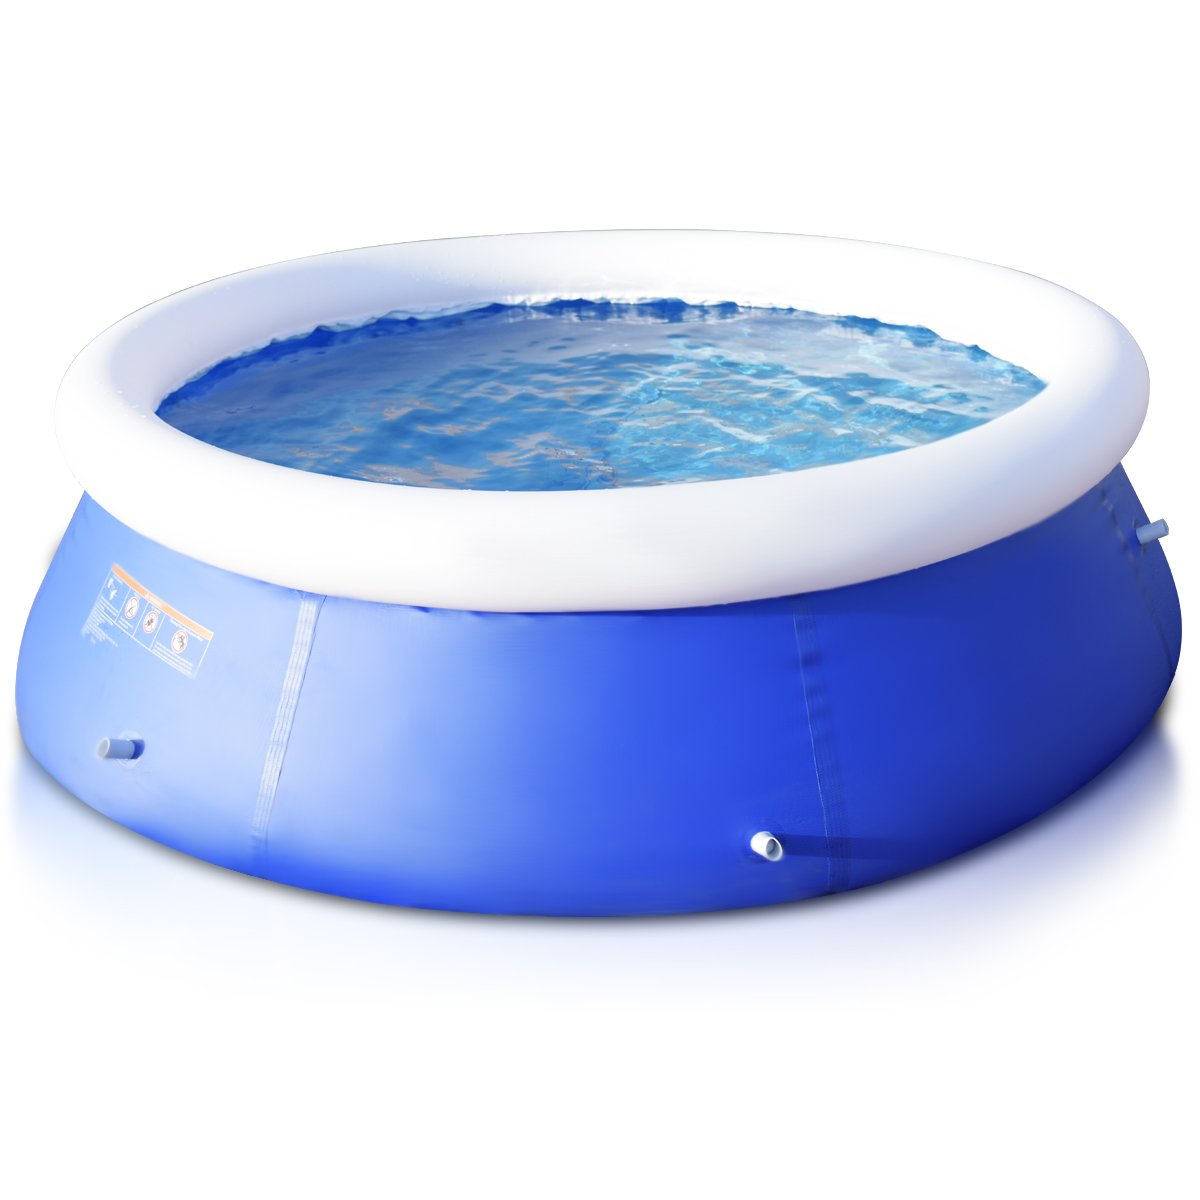 Goplus Inflatable Swimming Pool Family Lounge Pool Swim Play Center Easy Set Pool without Pump, 8' x 30'' (Blue) by Goplus (Image #3)